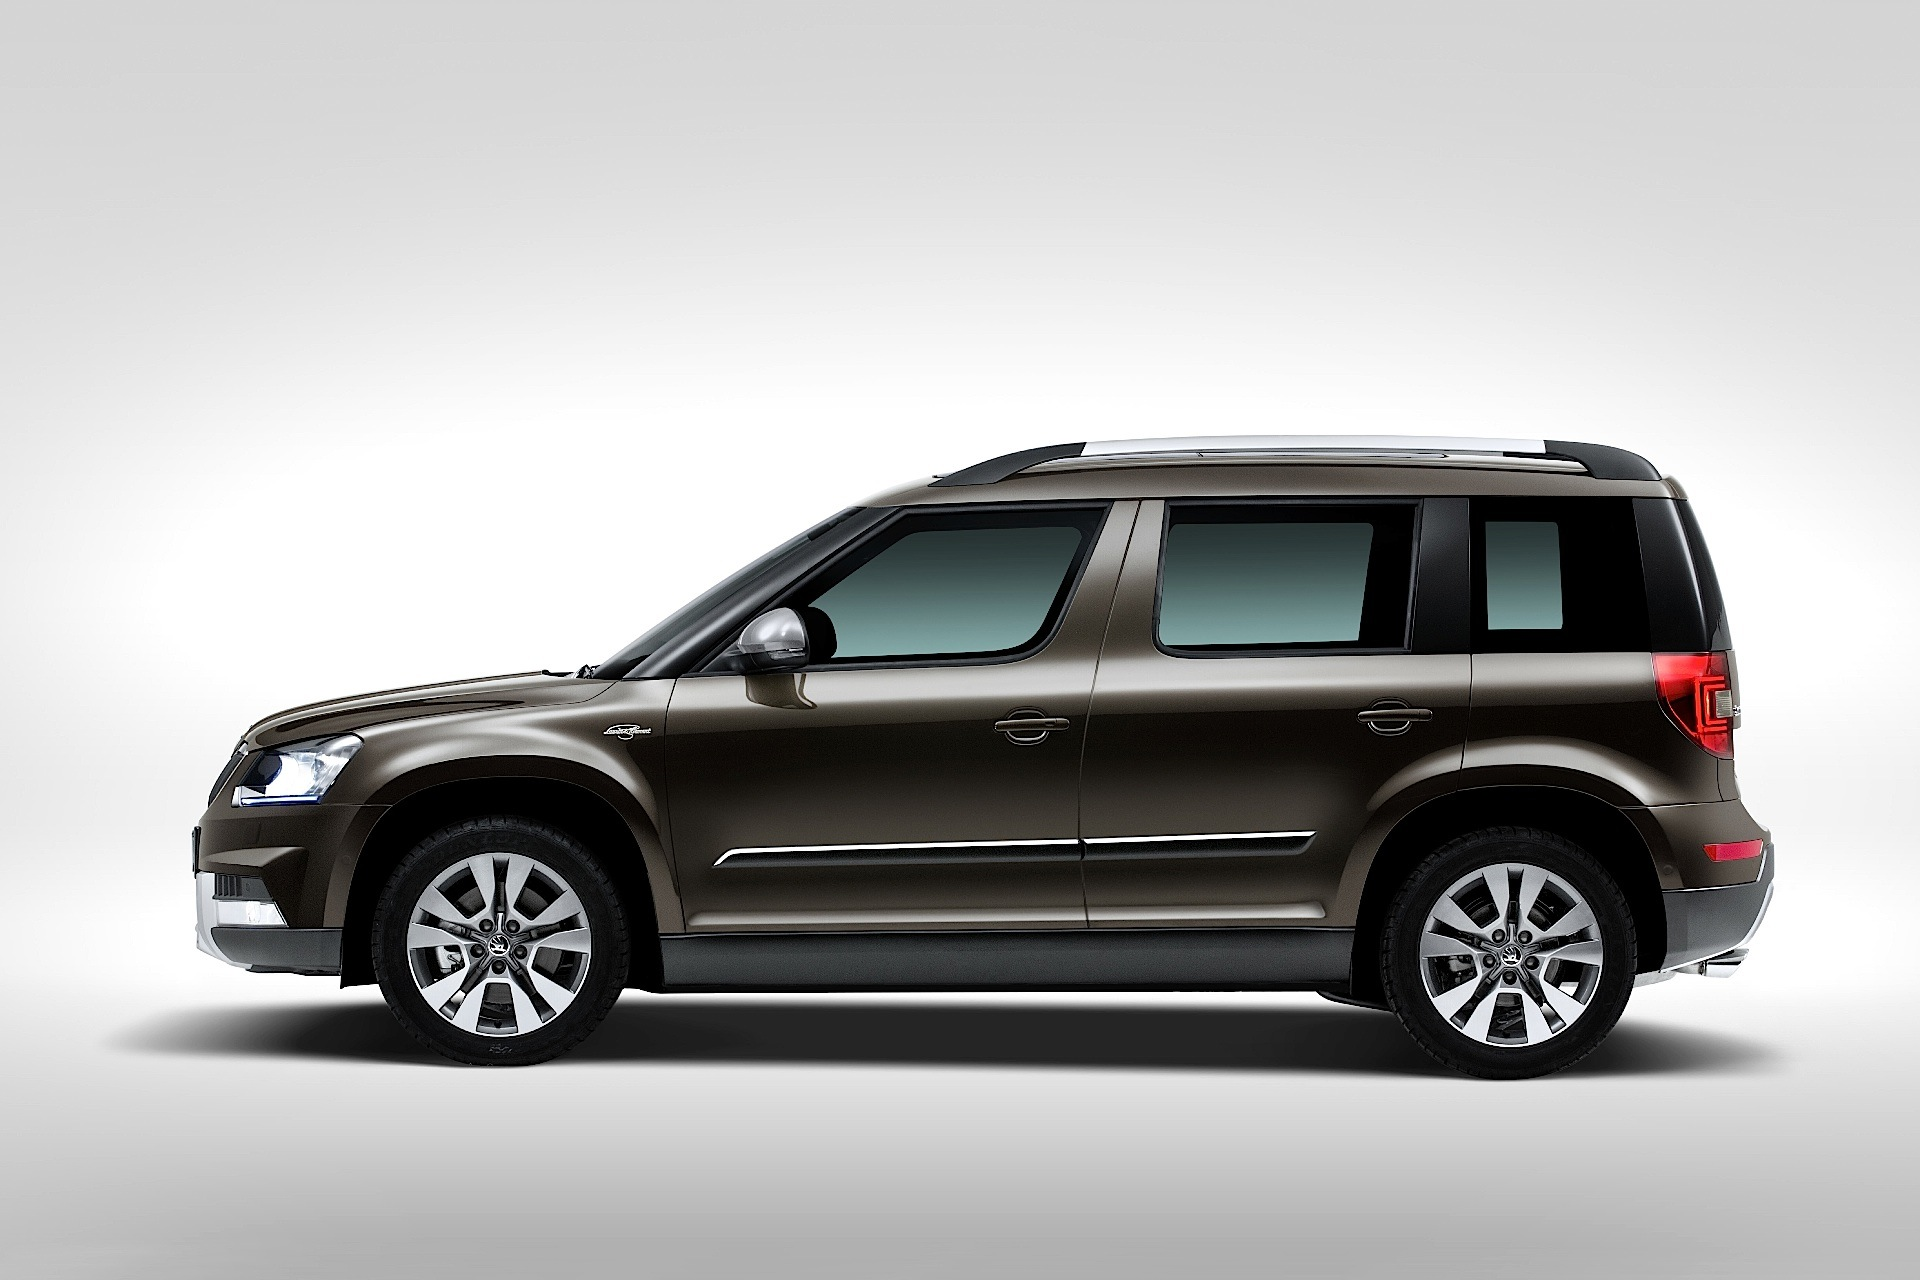 skoda yeti specs photos 2013 2014 2015 2016 2017. Black Bedroom Furniture Sets. Home Design Ideas